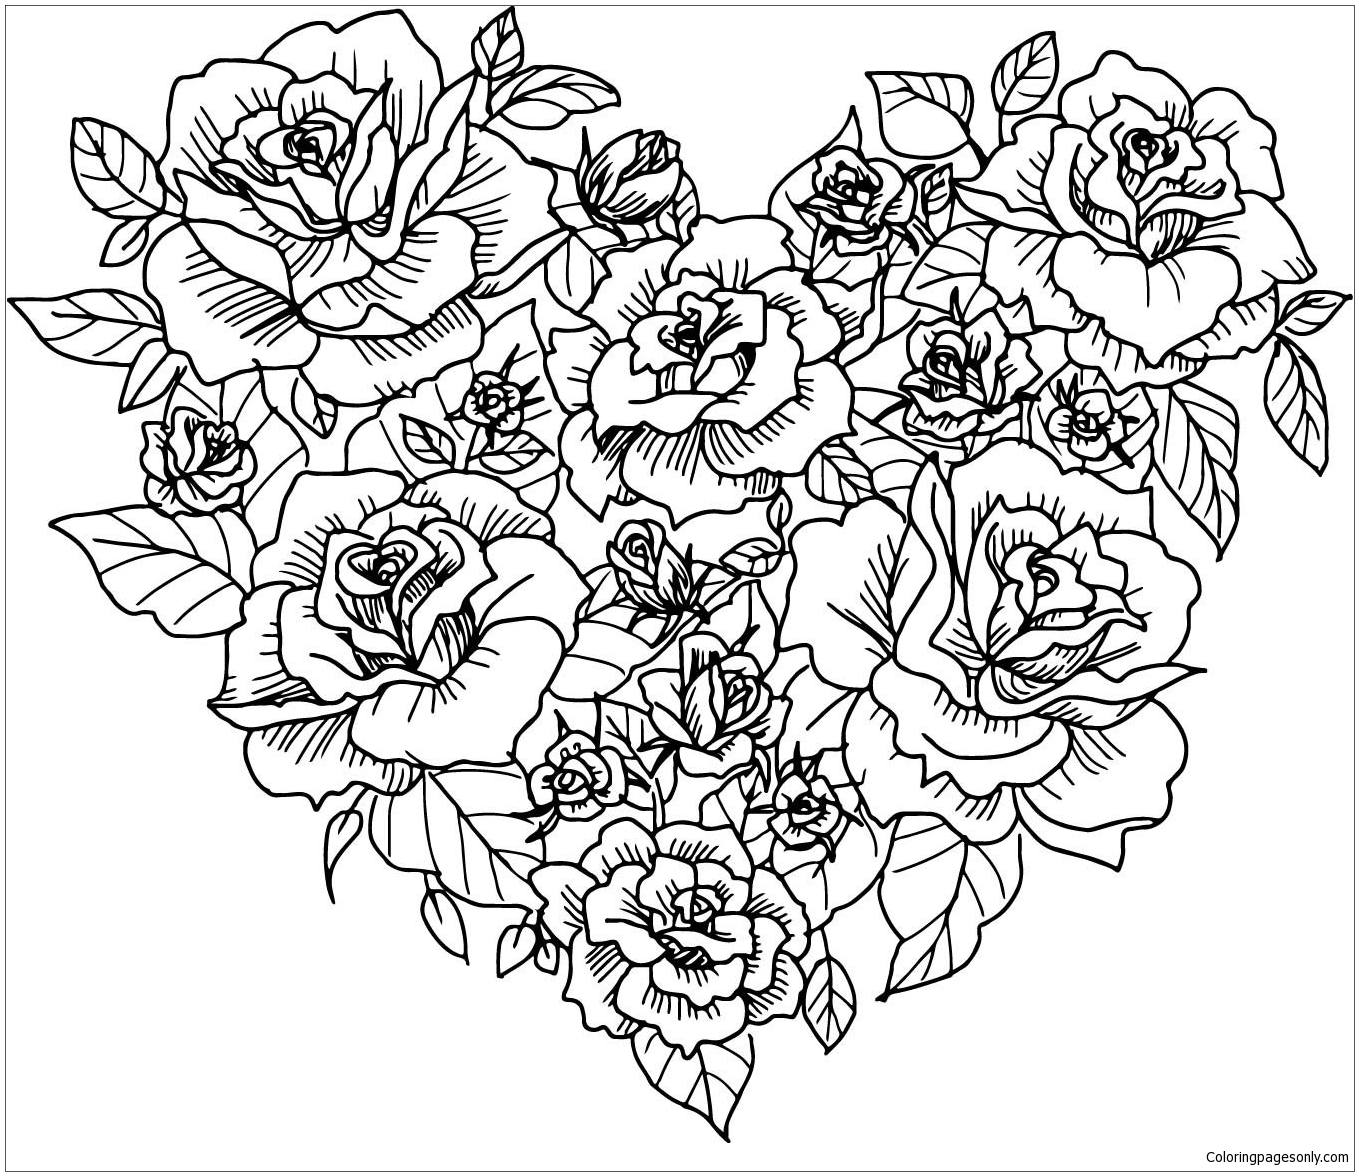 coloring pictures of flowers and hearts coloring pages for kids by mr adron flower hearts kid39s and coloring pictures flowers hearts of